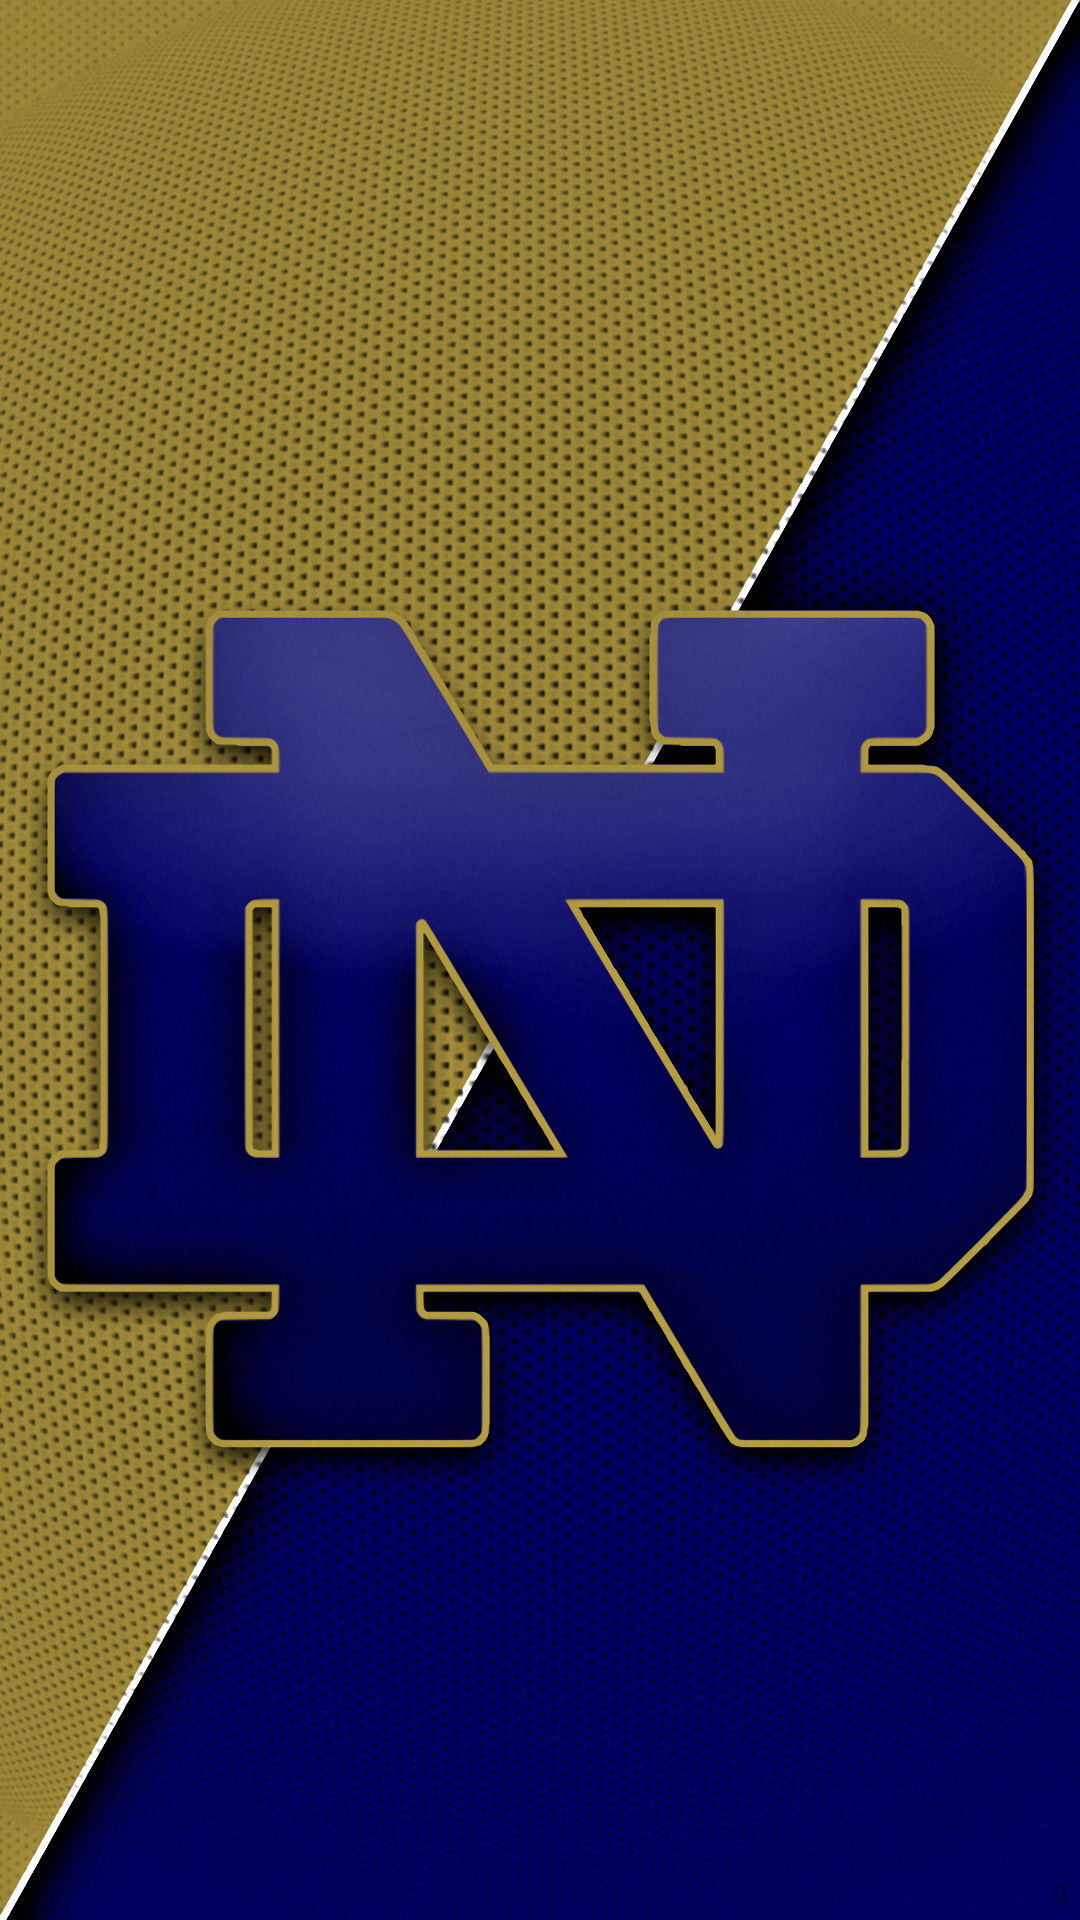 1080x1920 Notre Dame iPhone Wallpapers (46 Wallpapers) – HD Wallpapers